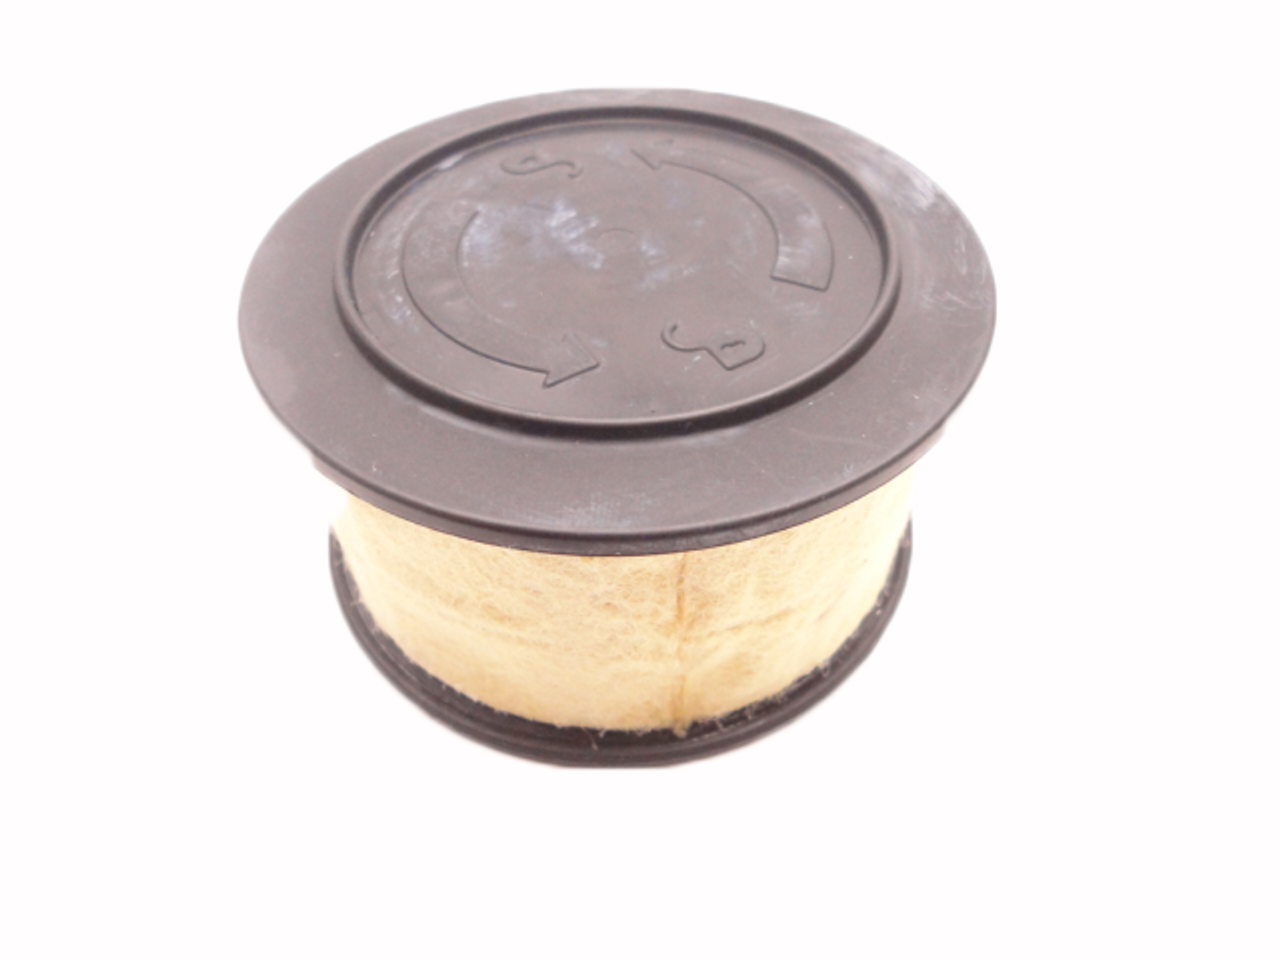 Chainsaw Air Filter For Stihl MS261 MS271 MS291 MS311 MS381 MS391#1141 120 1600